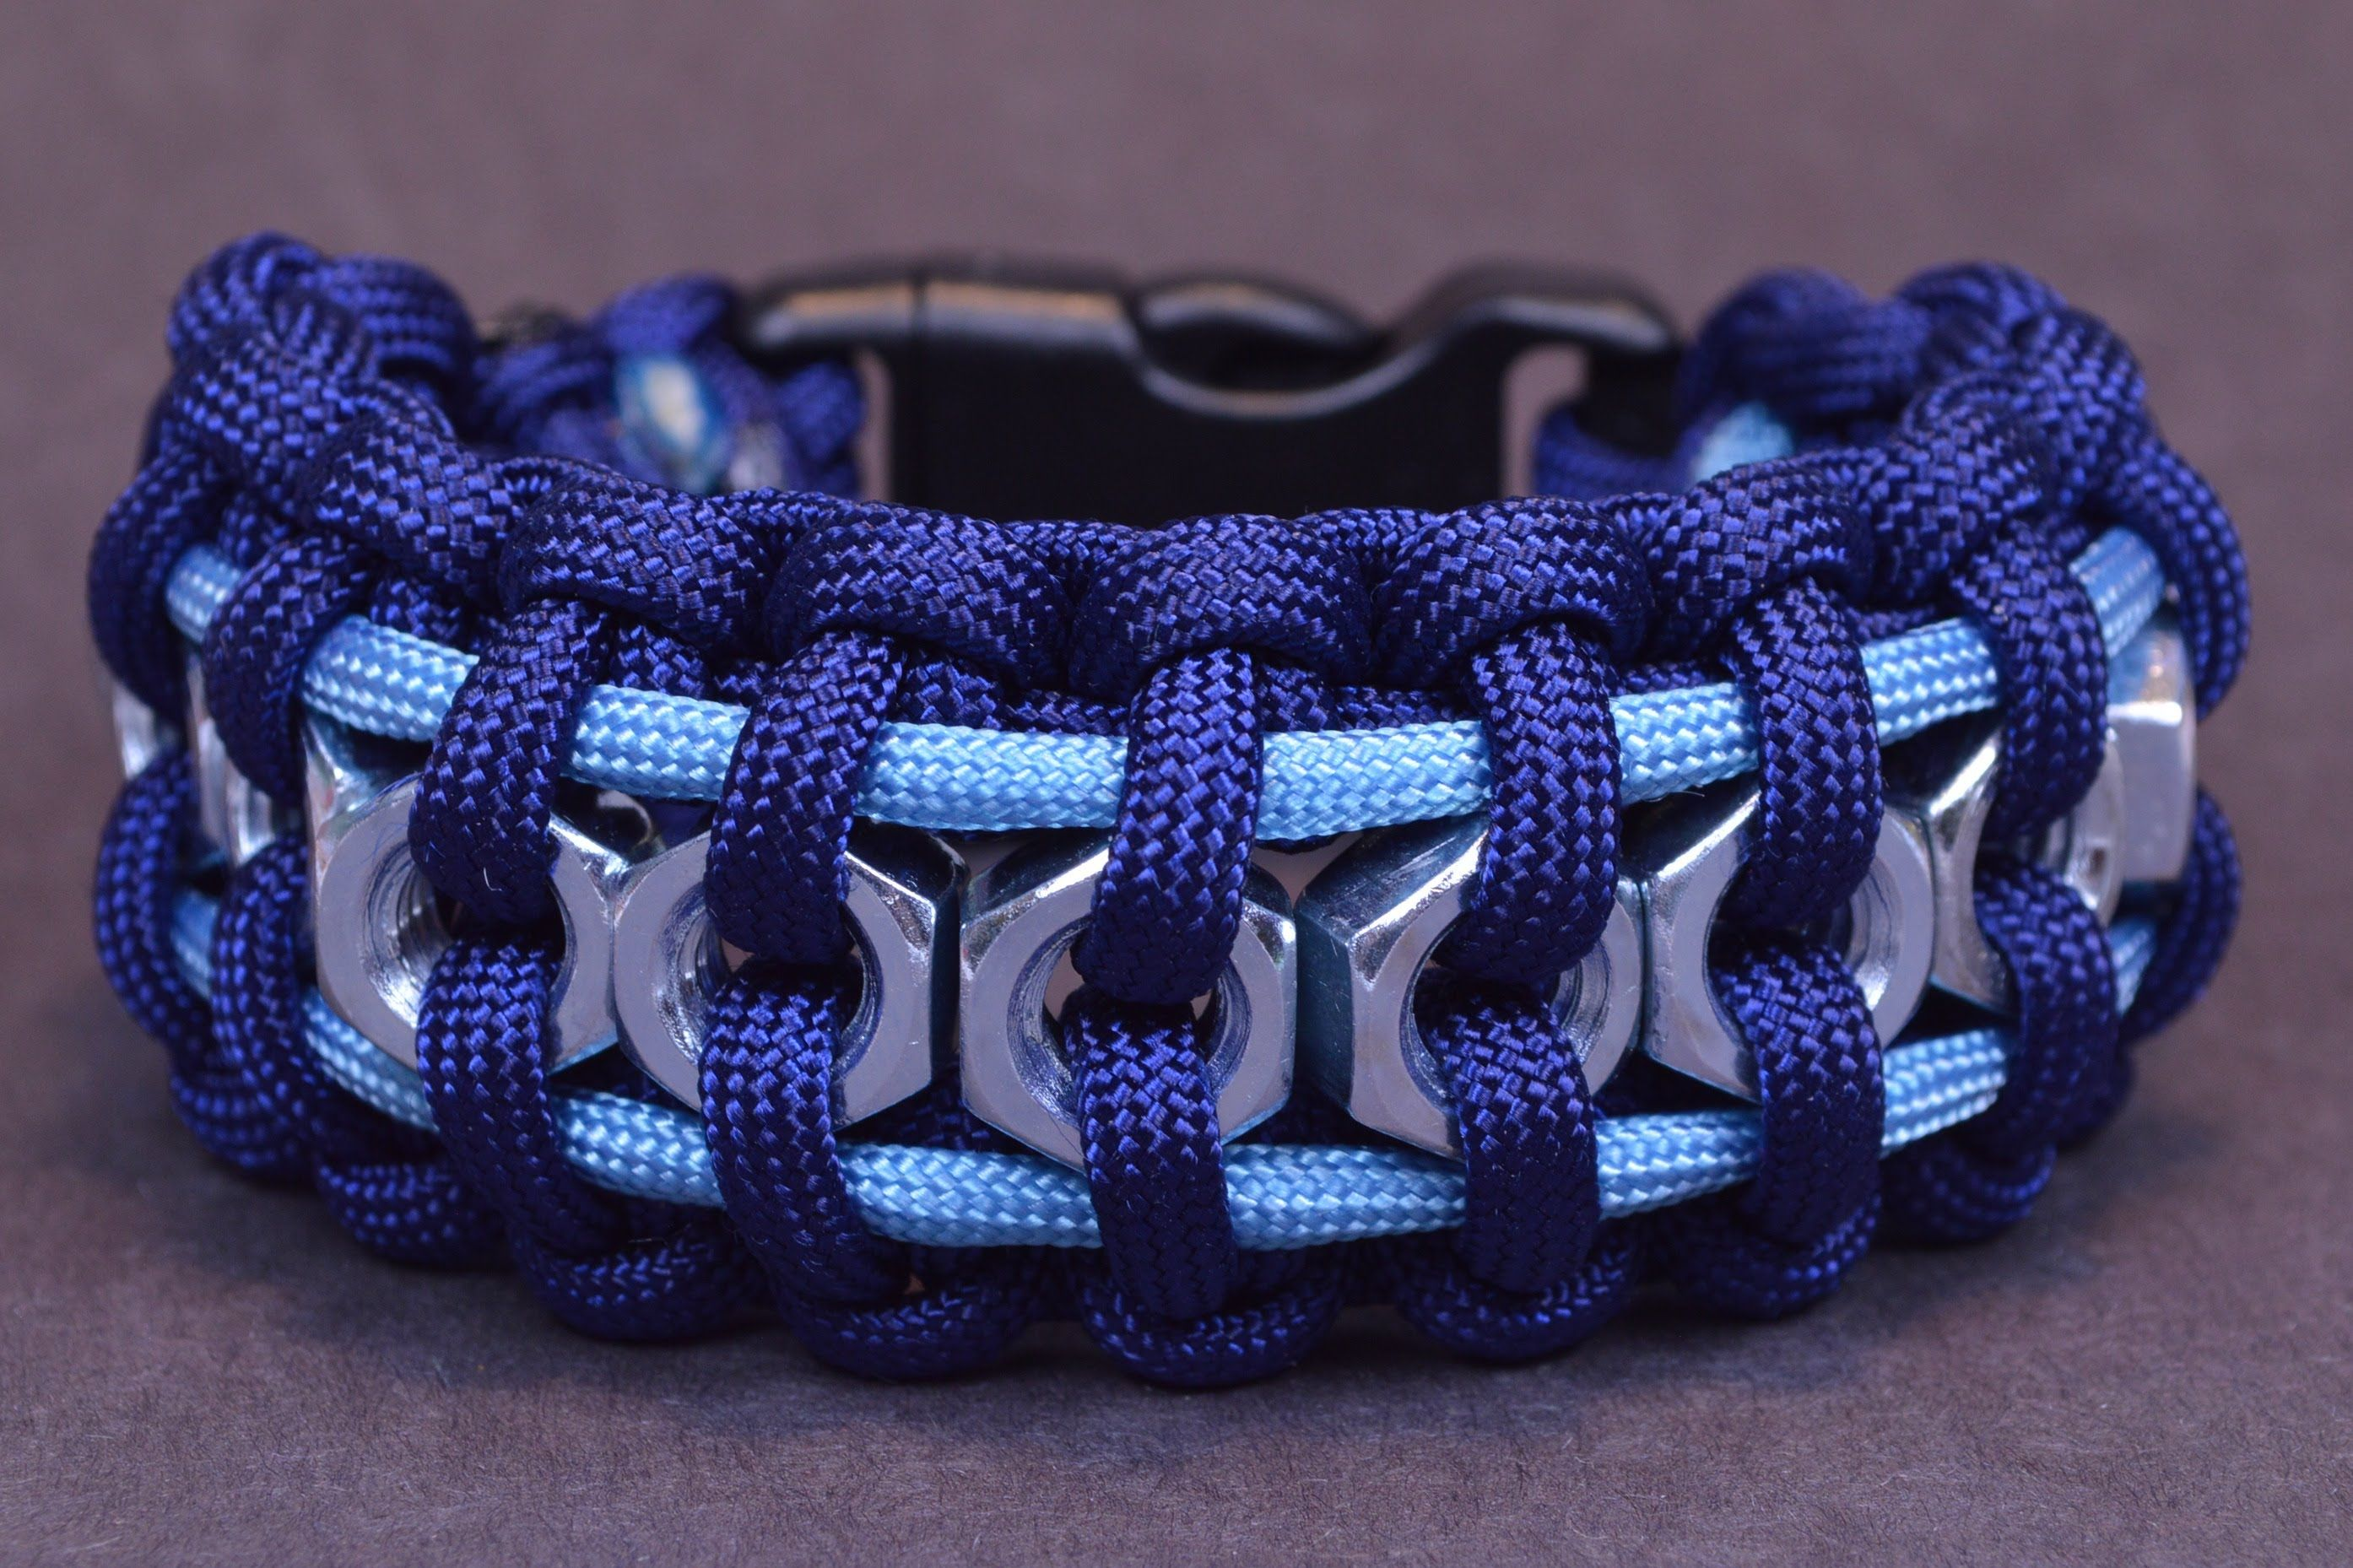 How To Make The Hex Nut Paracord Bracelet. There are many types of Paracord bracelets, and many different ways to make them. Here are two.